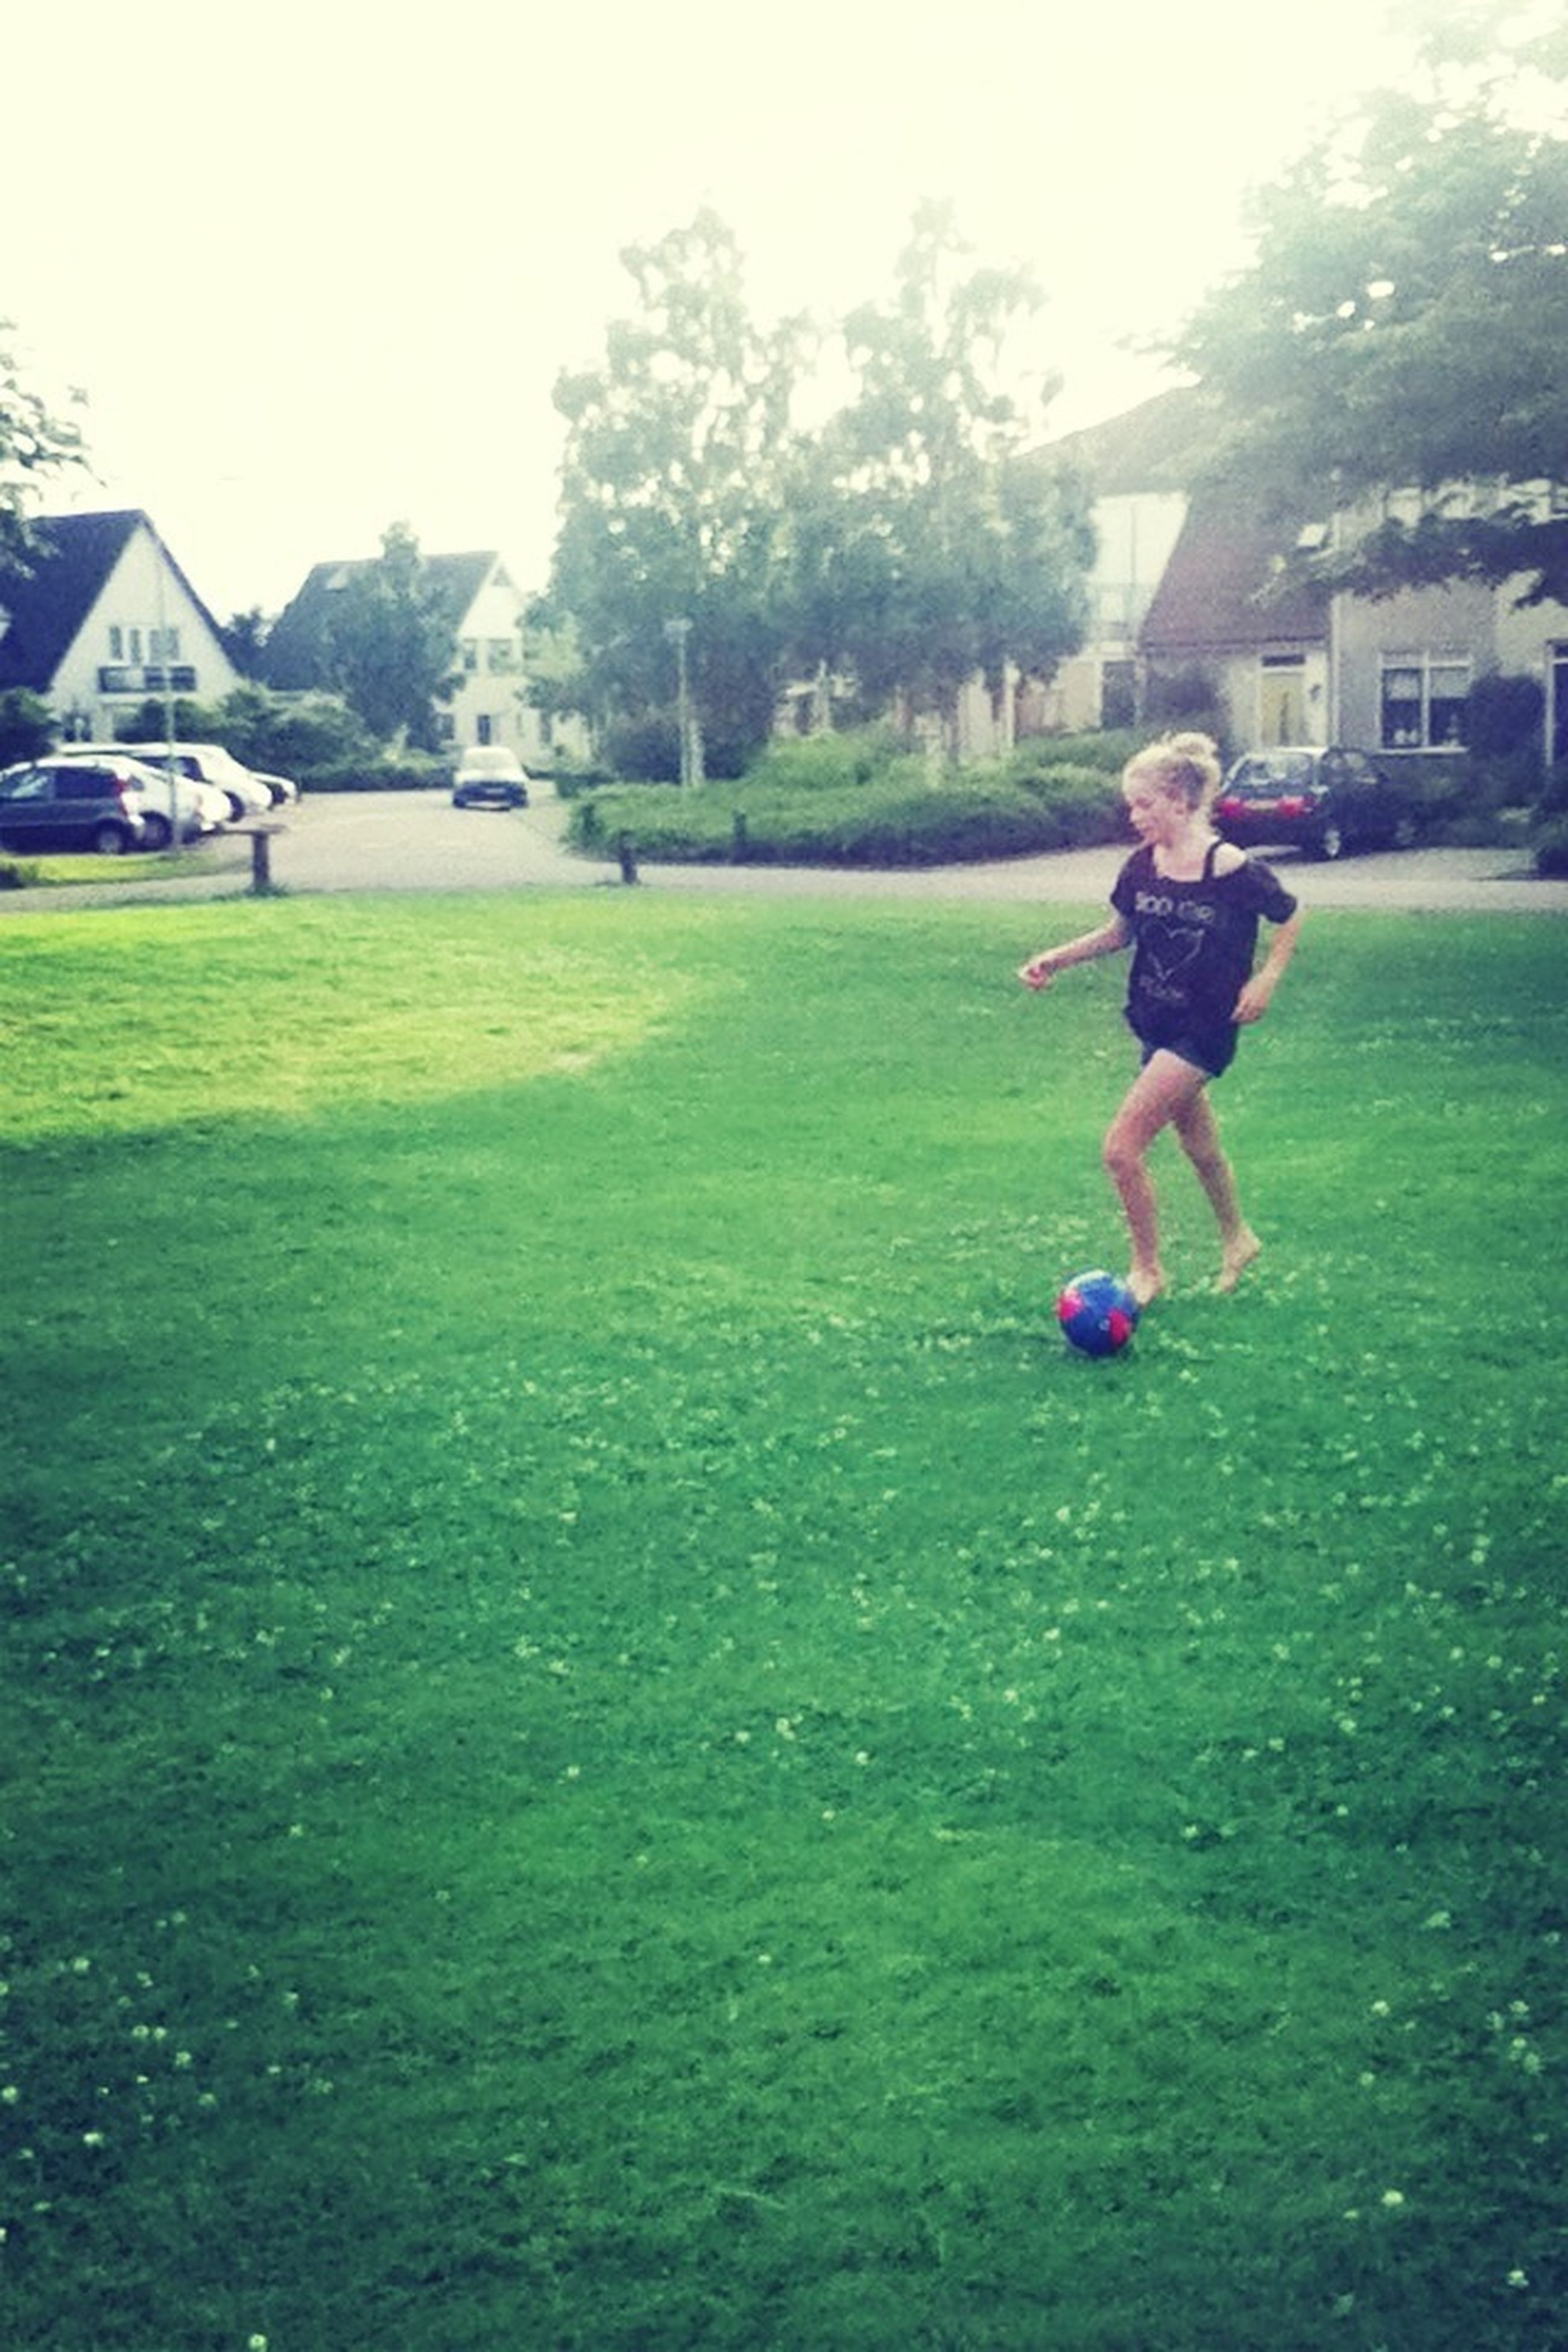 grass, lifestyles, leisure activity, childhood, full length, casual clothing, girls, elementary age, playing, boys, person, park - man made space, enjoyment, fun, playful, field, tree, grassy